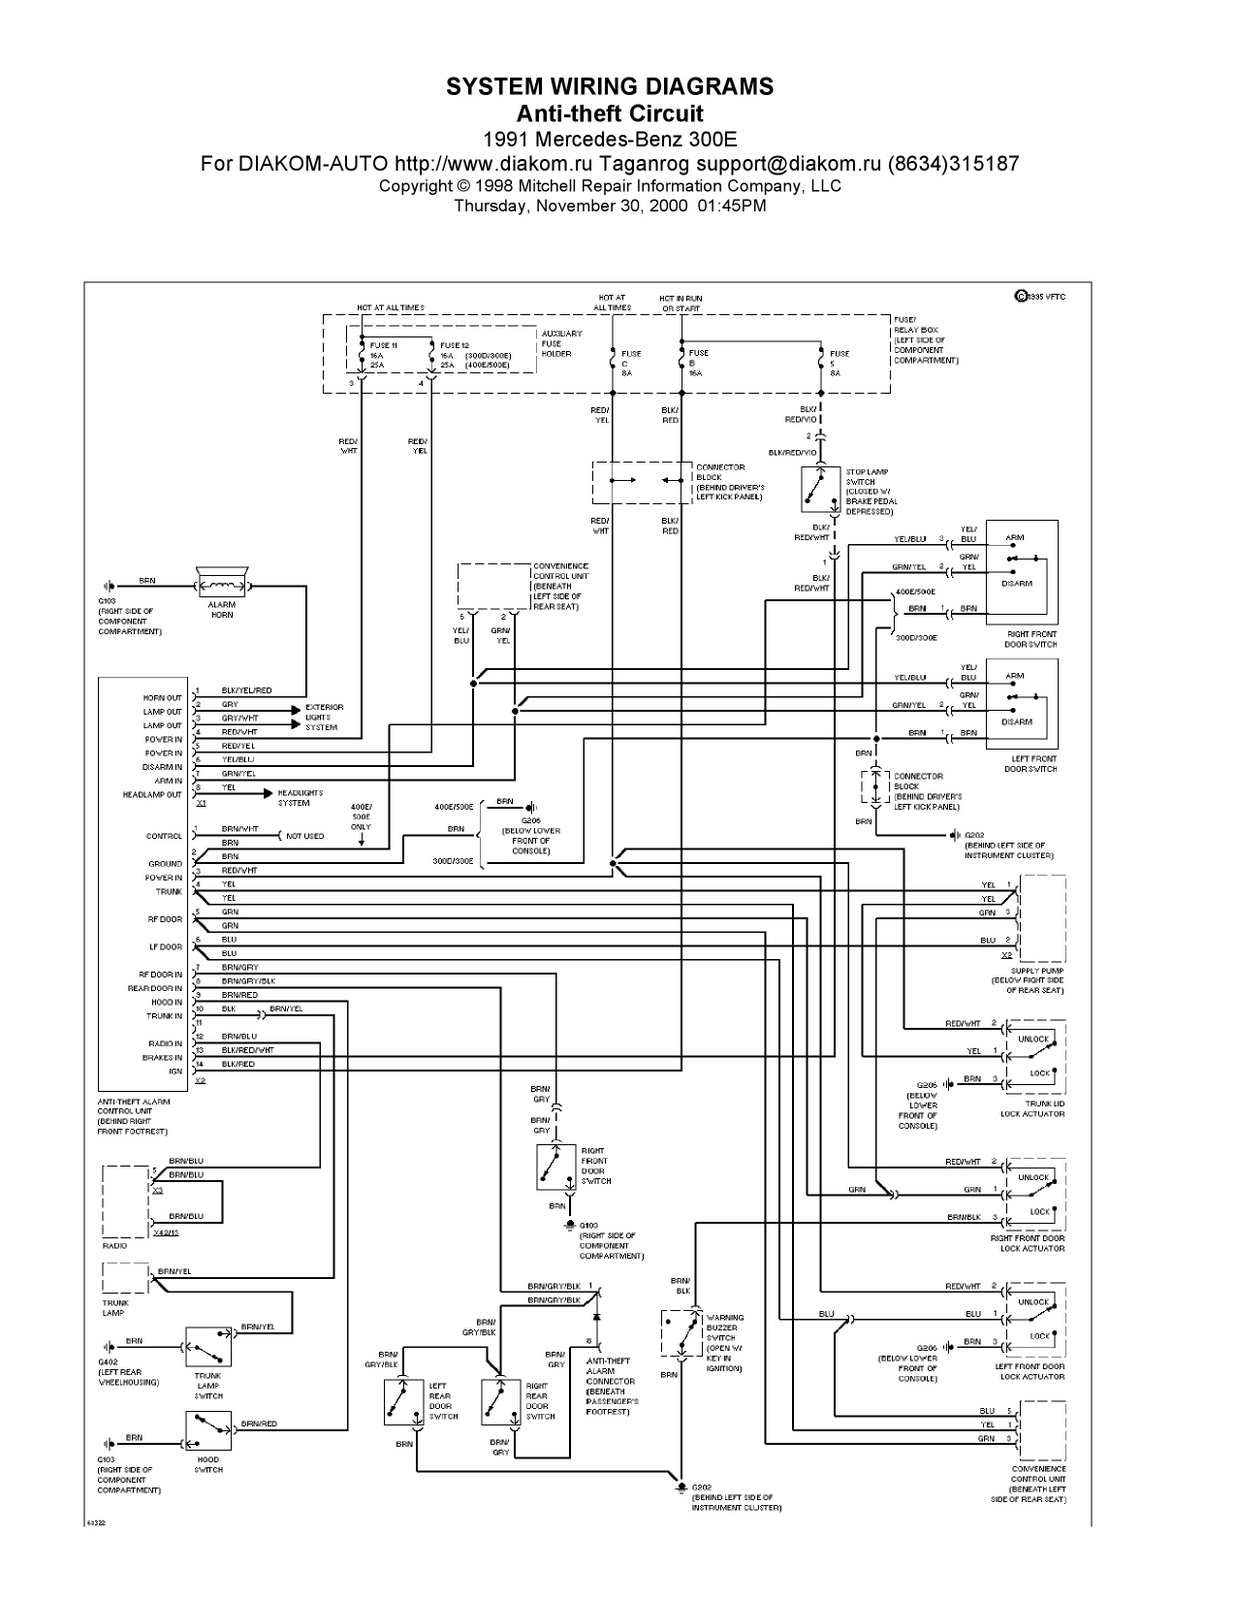 1972 Mercedes Benz Wiring Diagrams